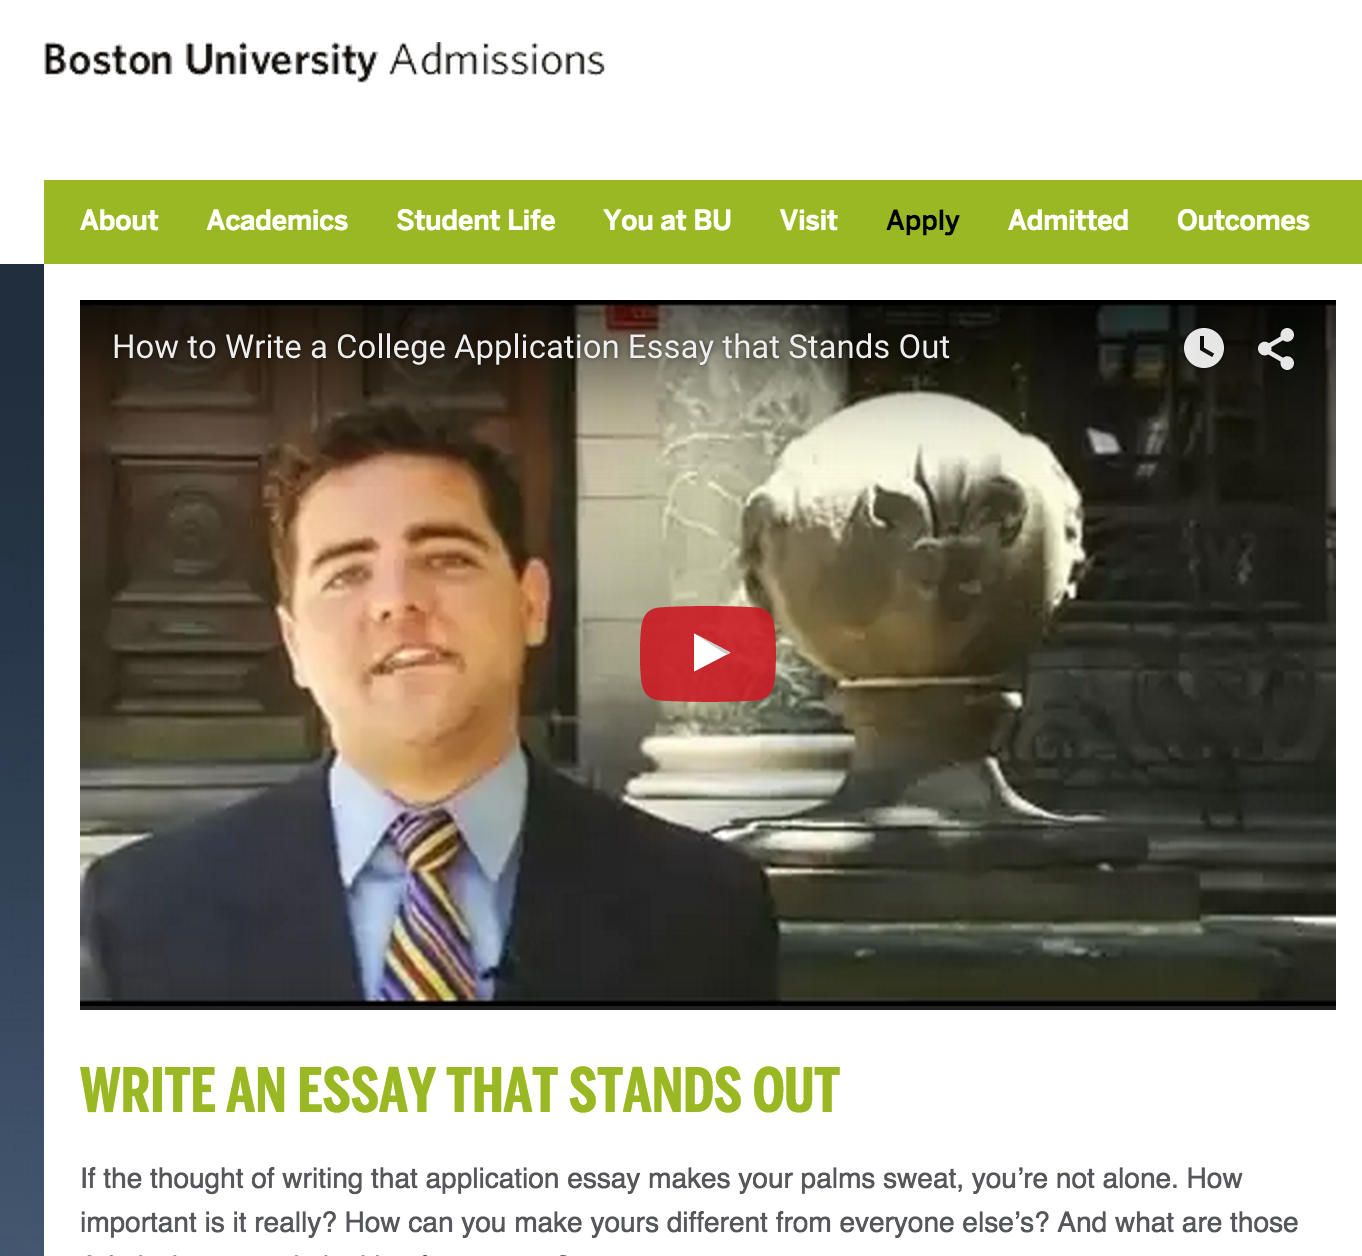 bc supplement essay questions The boston college admissions essays for 2013-2014 are up on the university's website of the supplemental college essays, students are asked to select one question of four to answer in no more than 400 words.